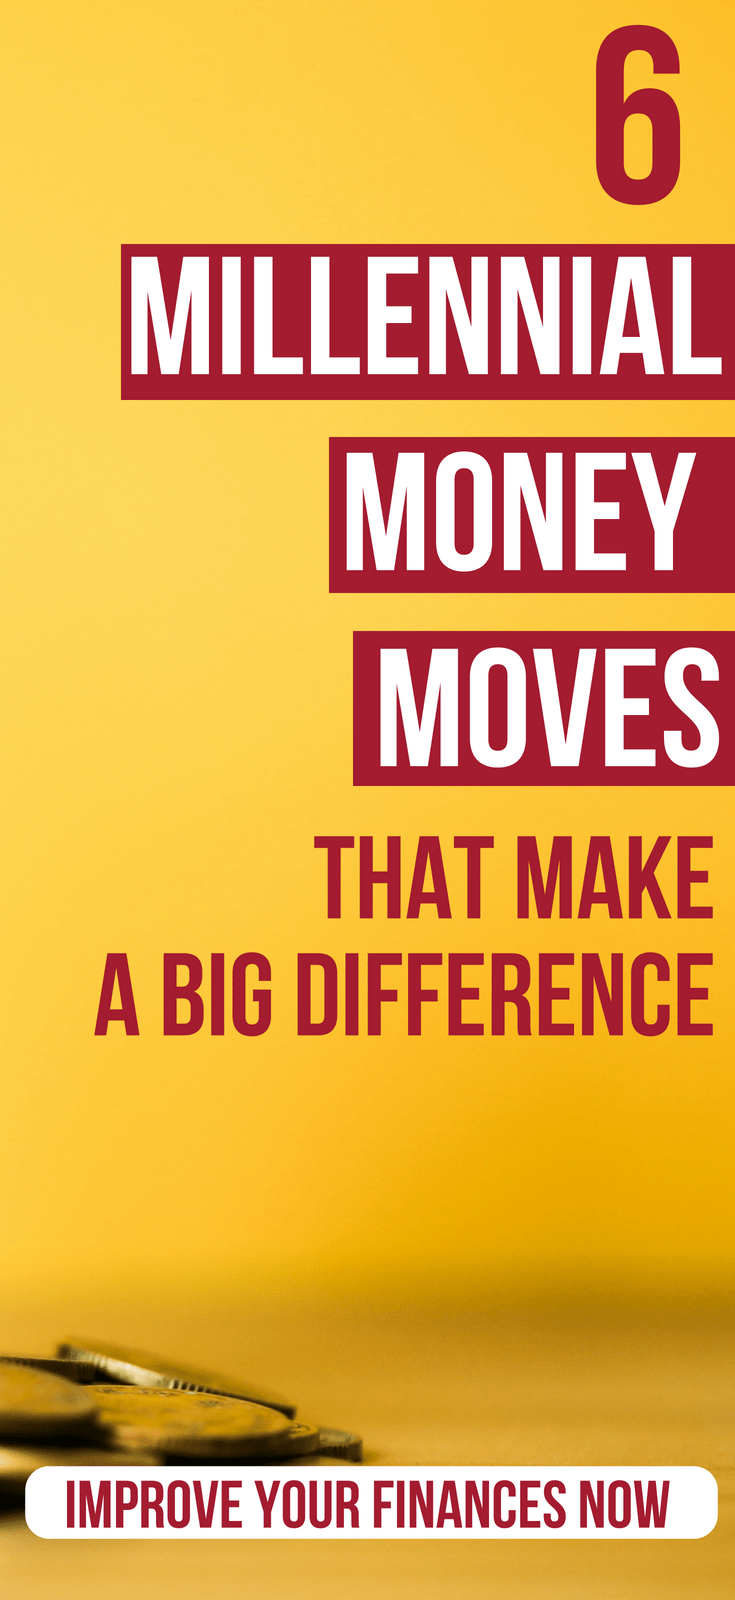 6 Smart Millennial Money Moves That Make a Big Difference  millennial money tips | personal finance for millennials | money tips for 20s | money tips for 30s | investing in your 20s  #thewaystowealth #millennials #moneymanagement